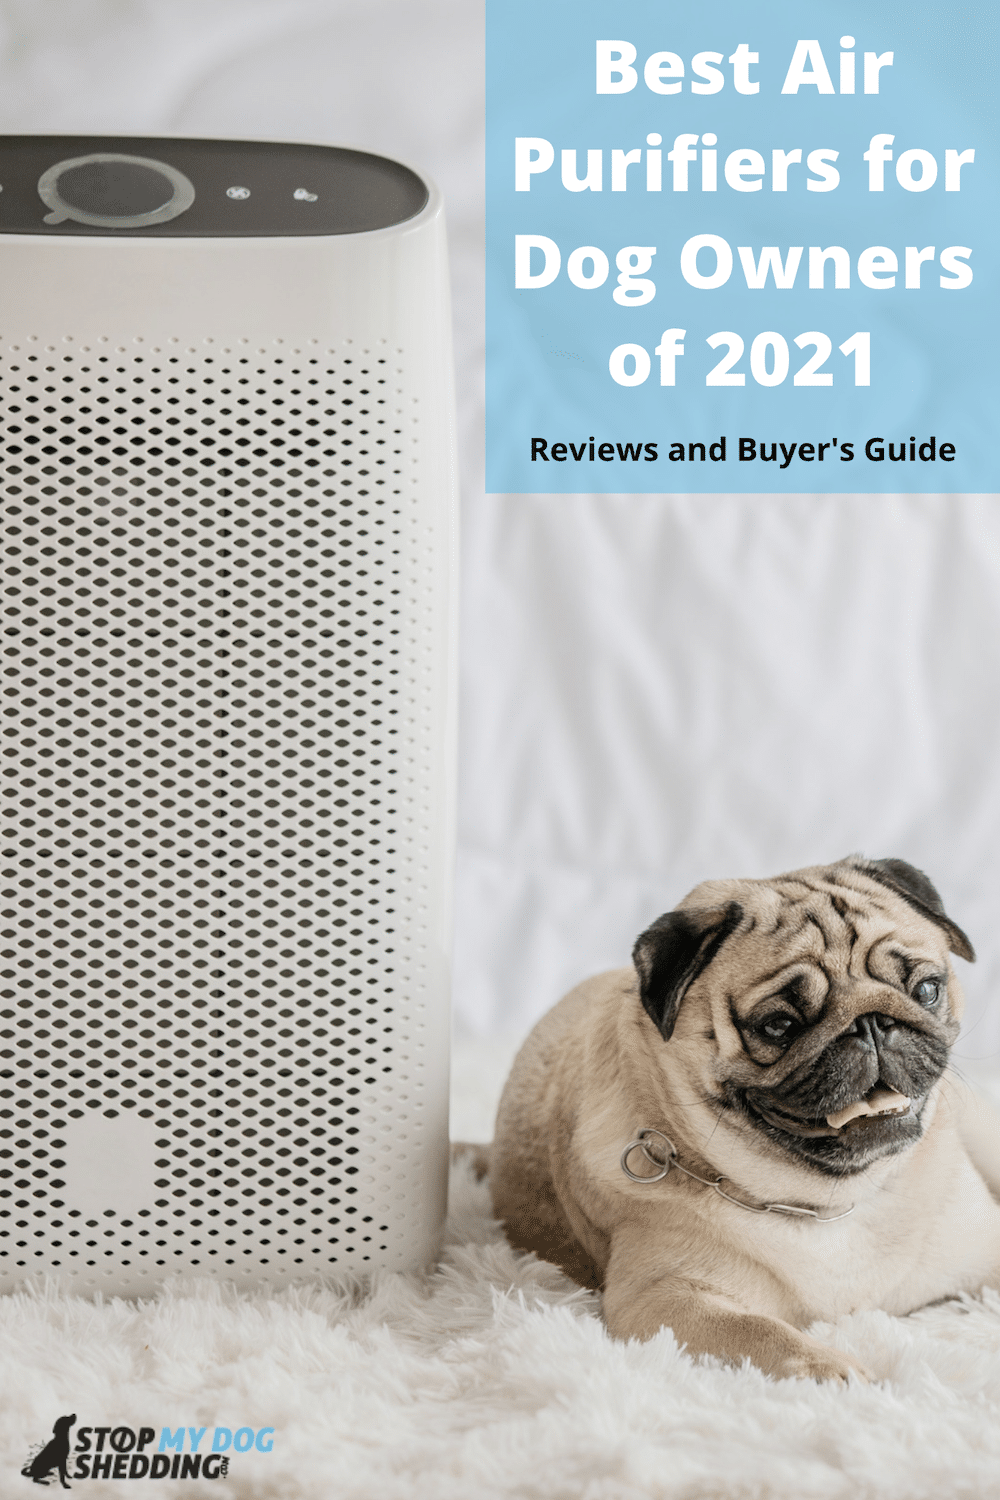 Top 5 Best Air Purifiers For Dog Owners (With Buyer's Guide)